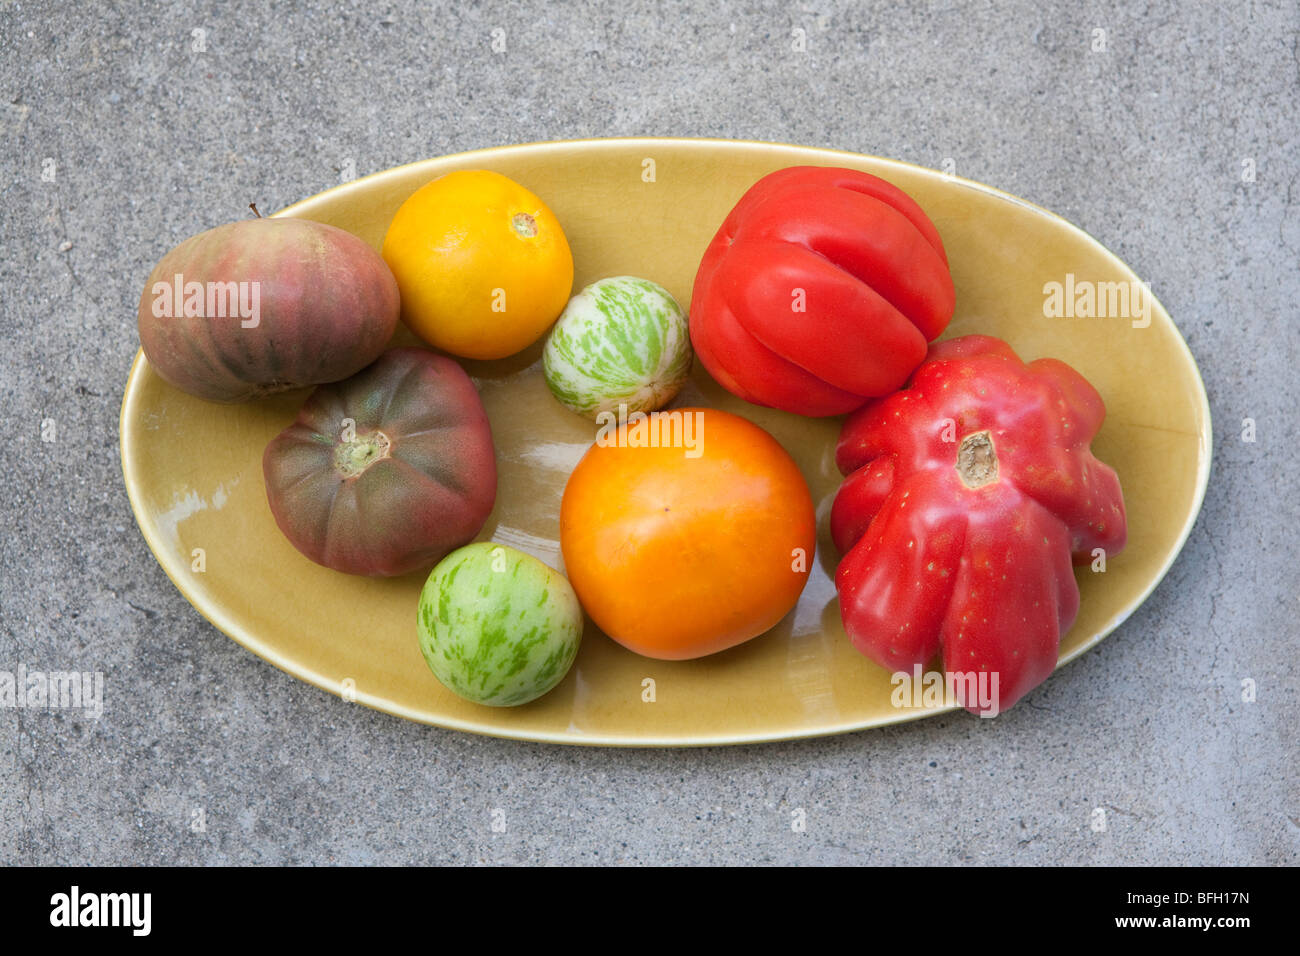 Heirloom tomatoes on Russel Wright oval plate - Stock Image